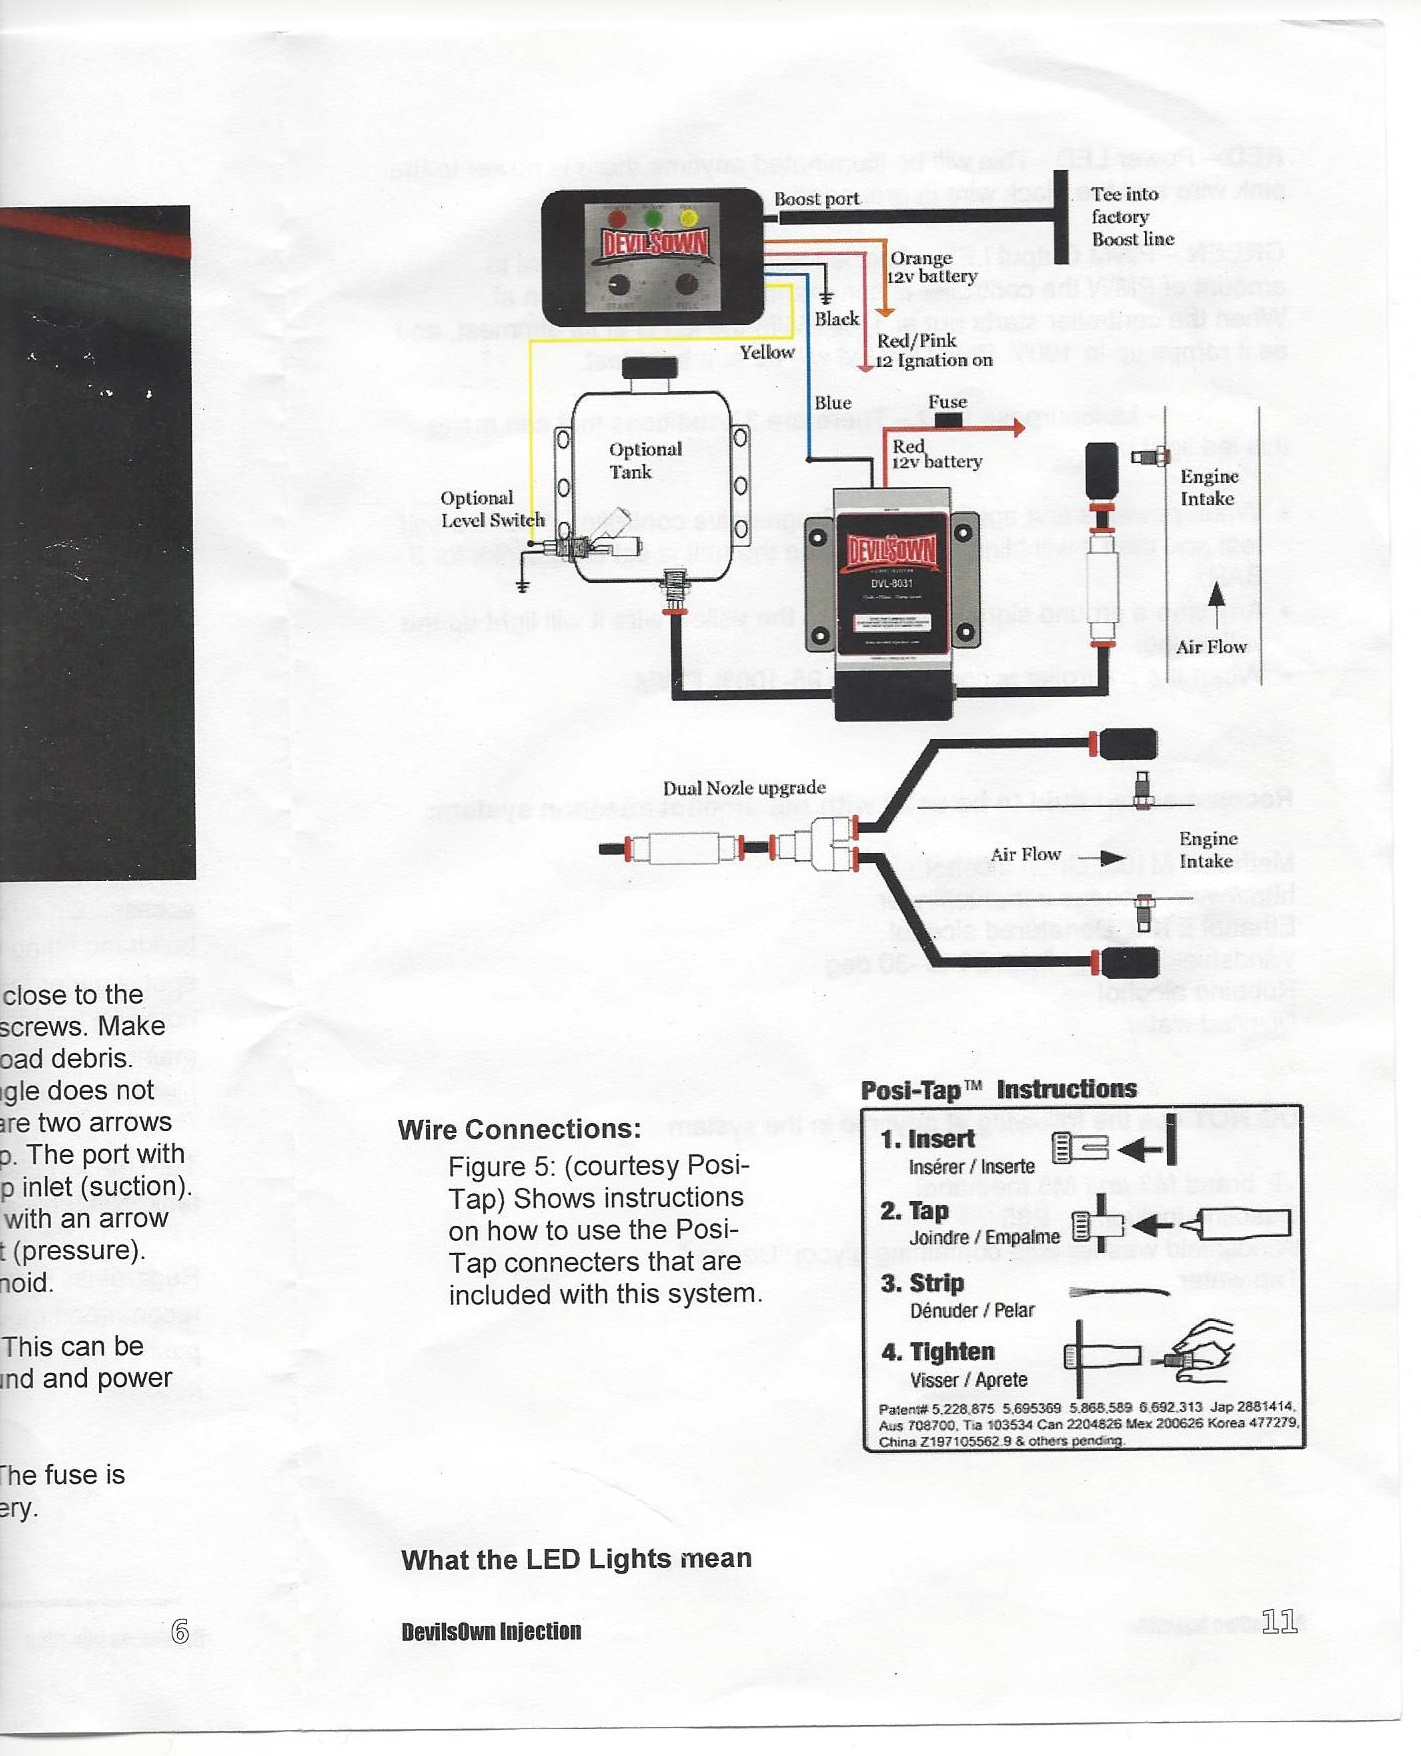 aem map sensor wiring diagram honda 6 5 hp engine parts failsafe water meth need help to wire up hondata